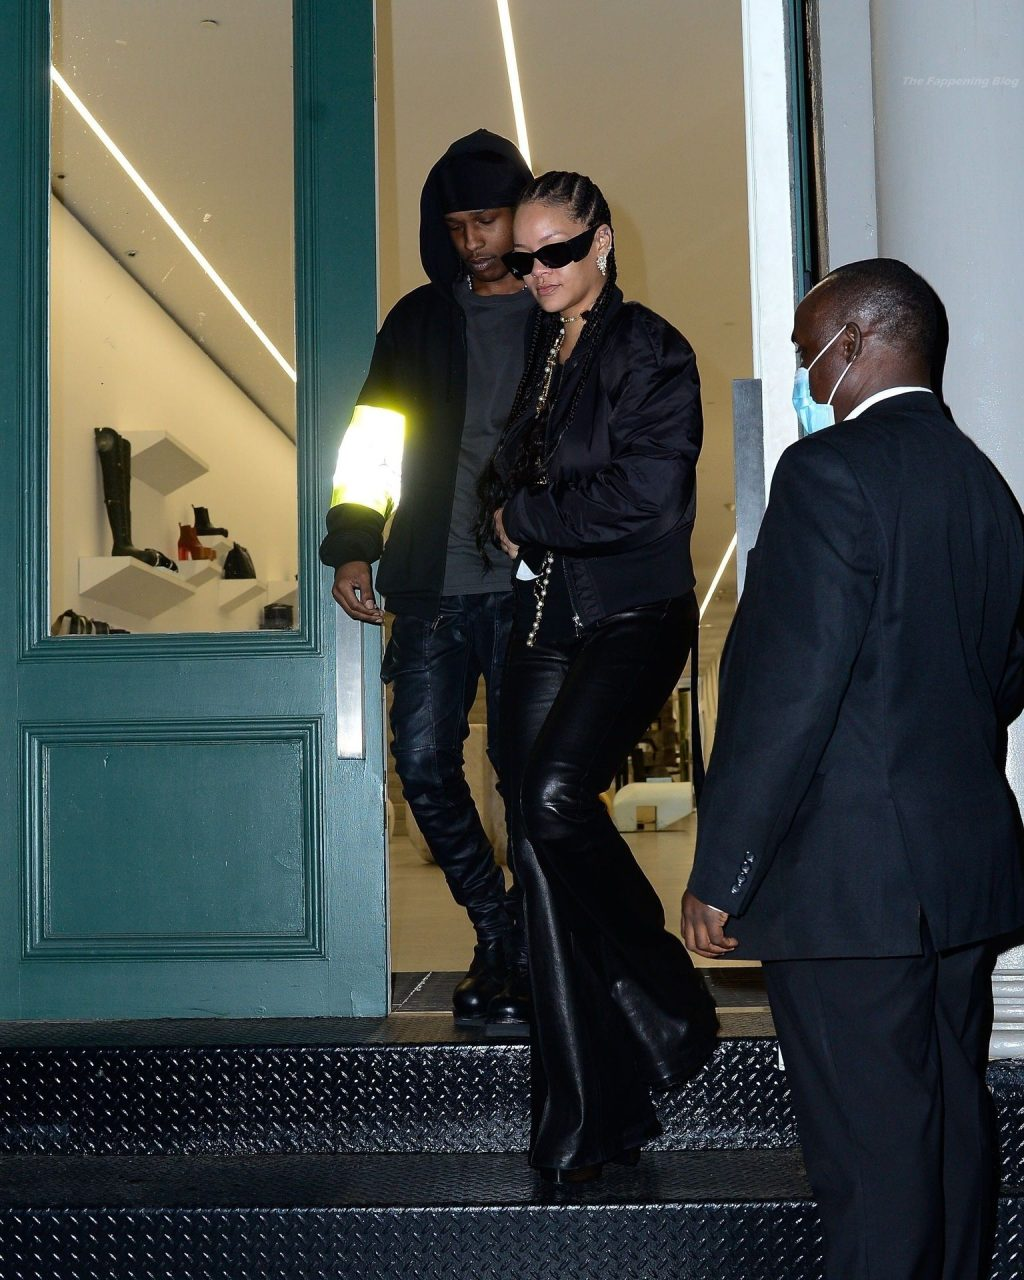 Rihanna & A$AP Rocky are Seen Shopping at Rick Owens in NYC (41 Photos) [Updated]